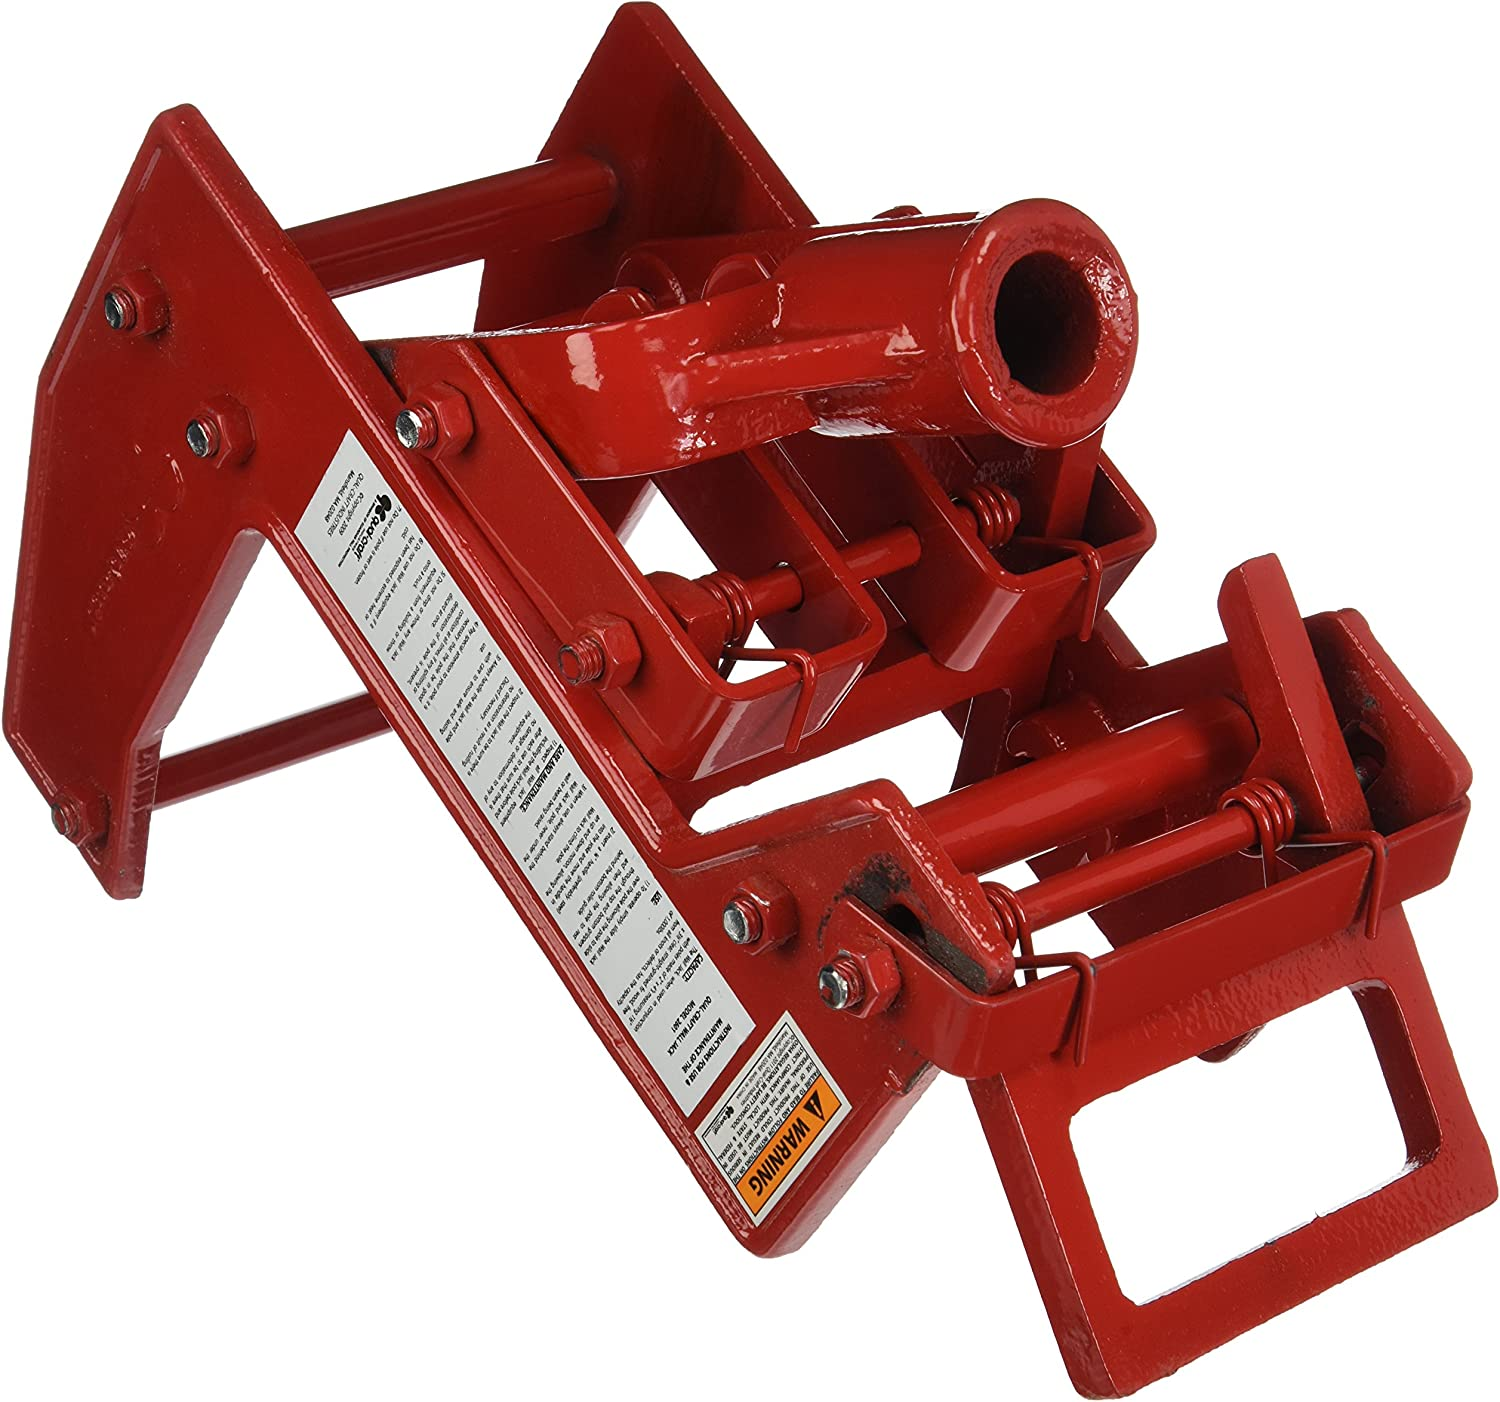 B0000224MY Qualcraft 2601 Portable Wall Jack, for Use with 1-1/2 X 3-1/2 in Fir Poles Or 1 in Od Steel Pipe, Malleable Iron, Red 91dUoKPGzQL